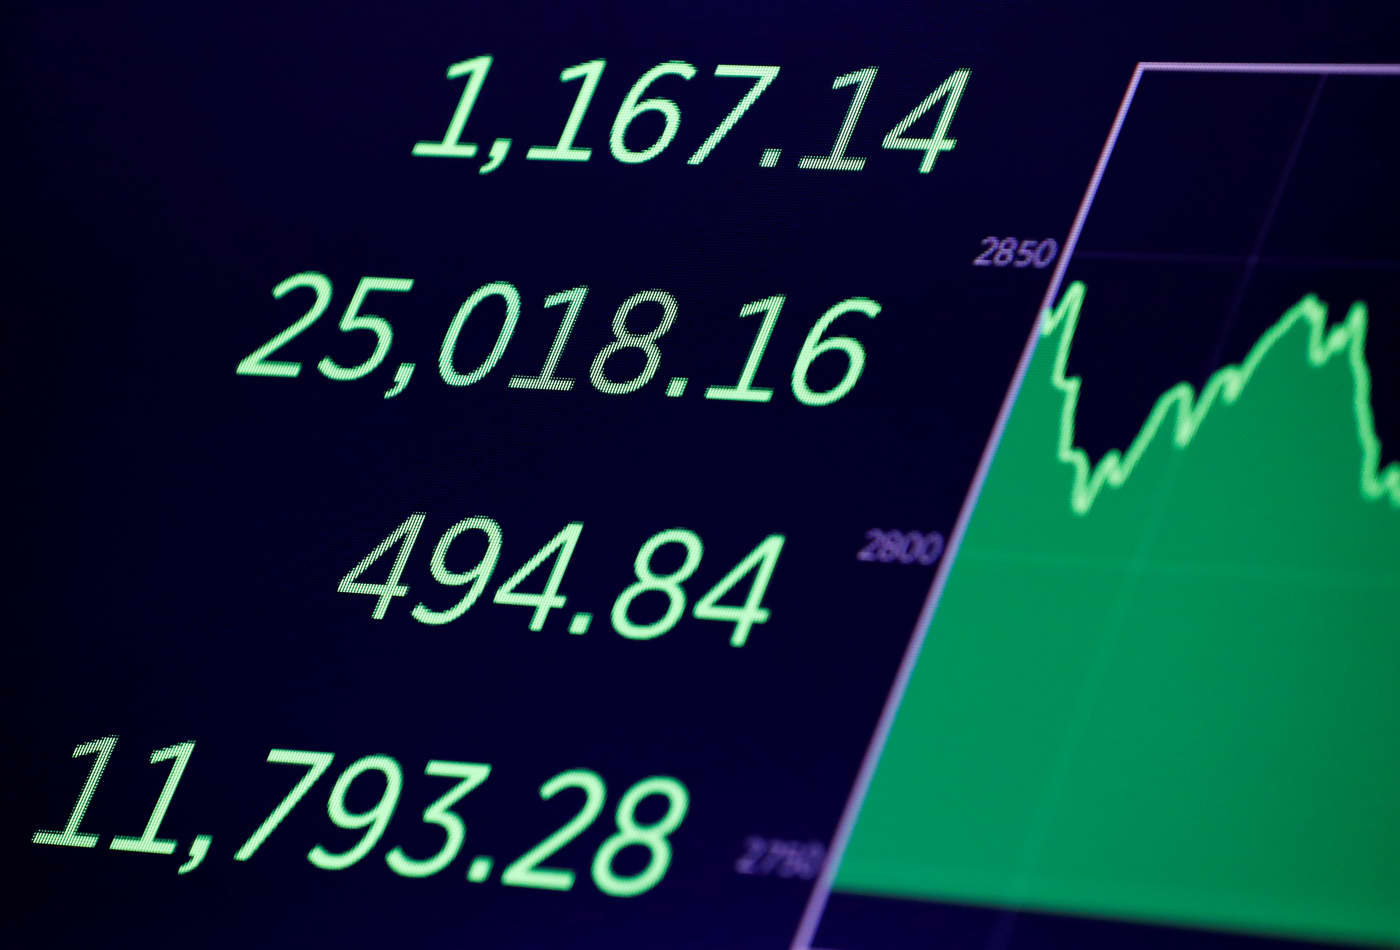 Dow rallies more than 1,100 points in a wild session, halves losses from Monday's sell-off